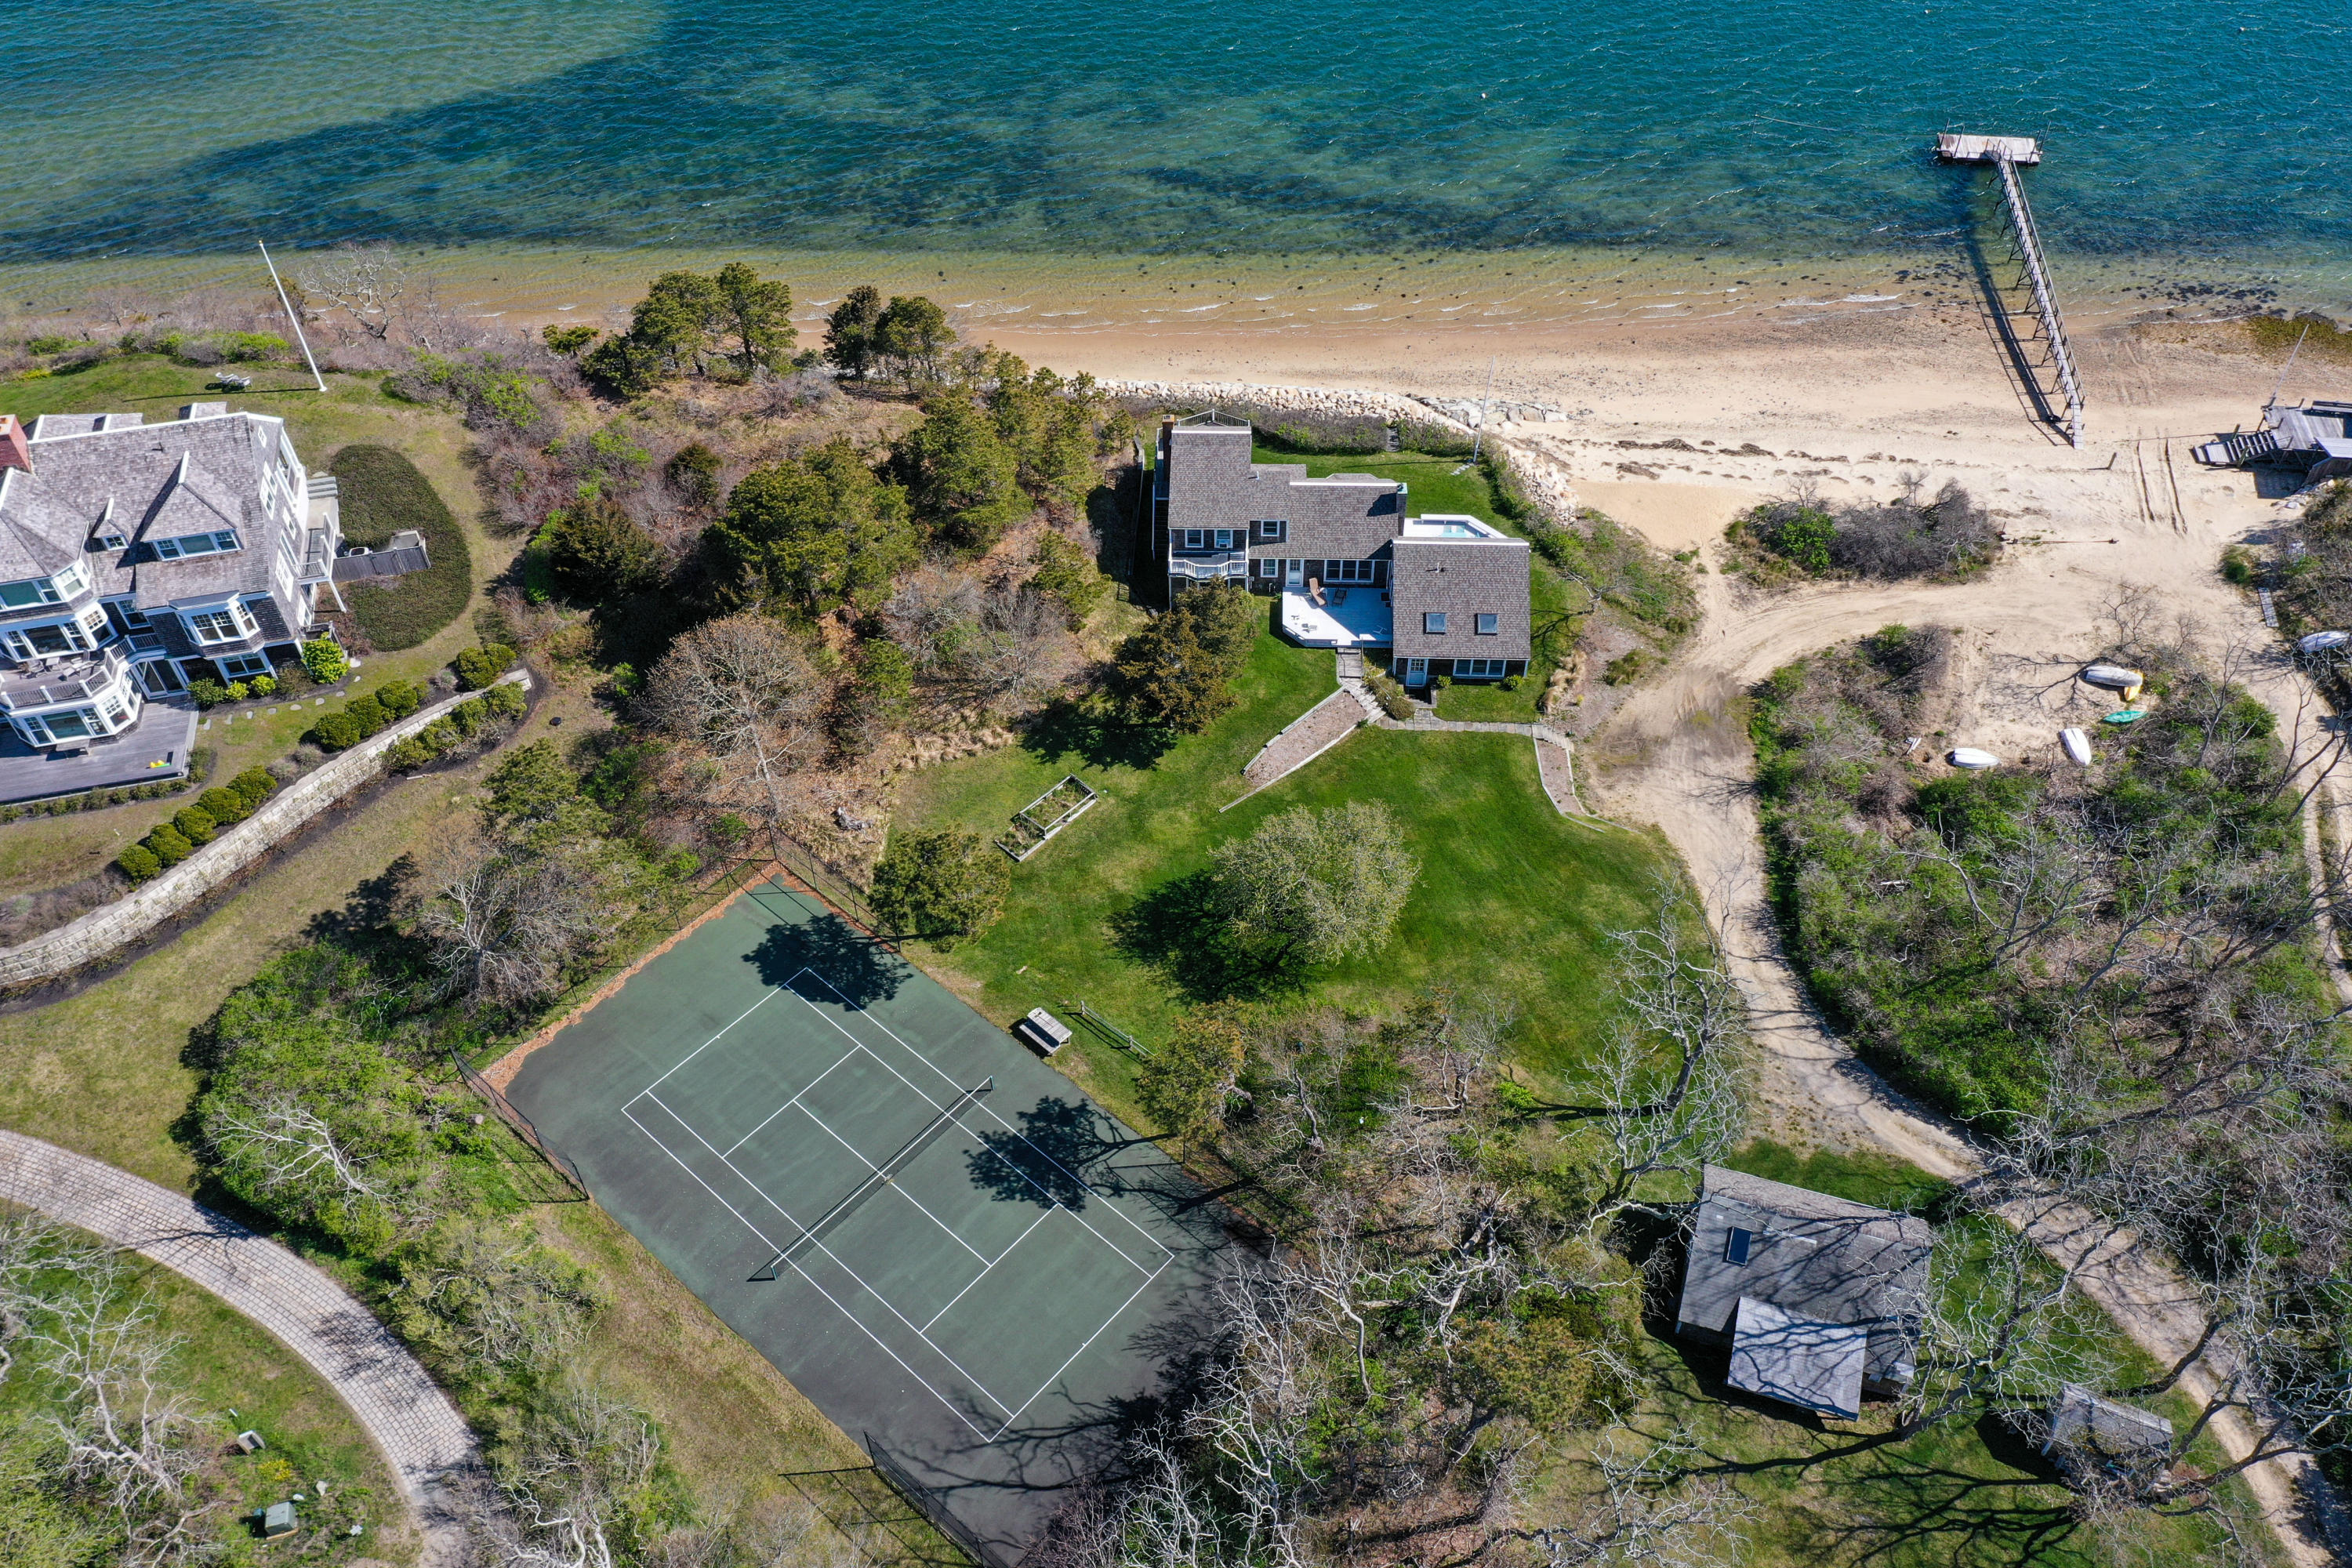 299 Cranberry Lane, North Chatham MA, 02650 details